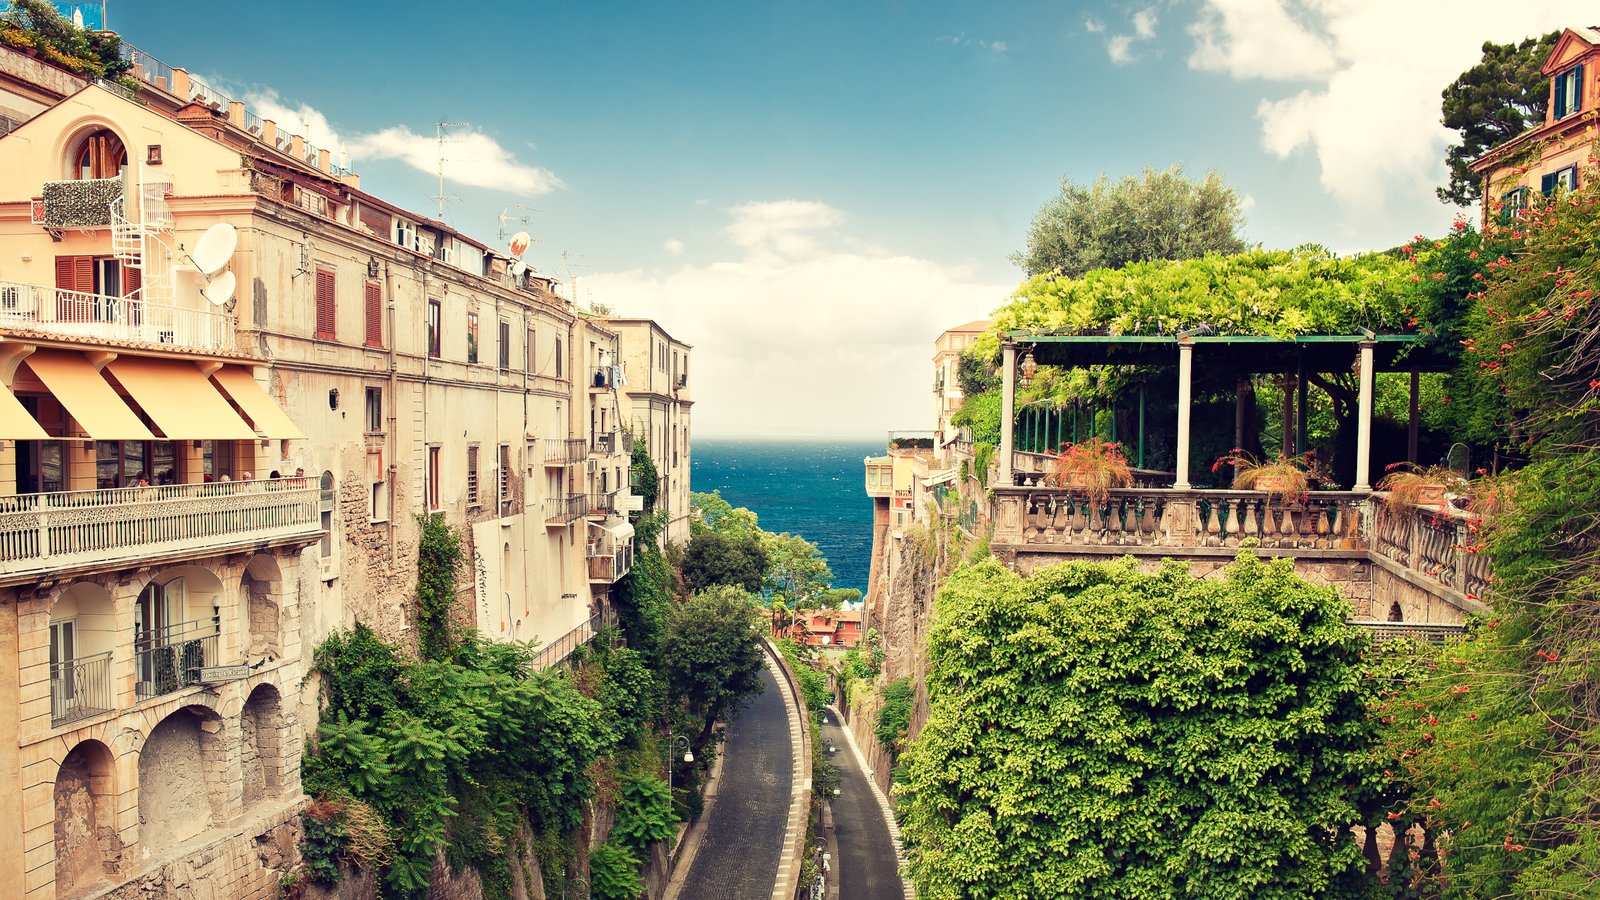 Historic Buildings Pictures: View Images of Sorrento Coast